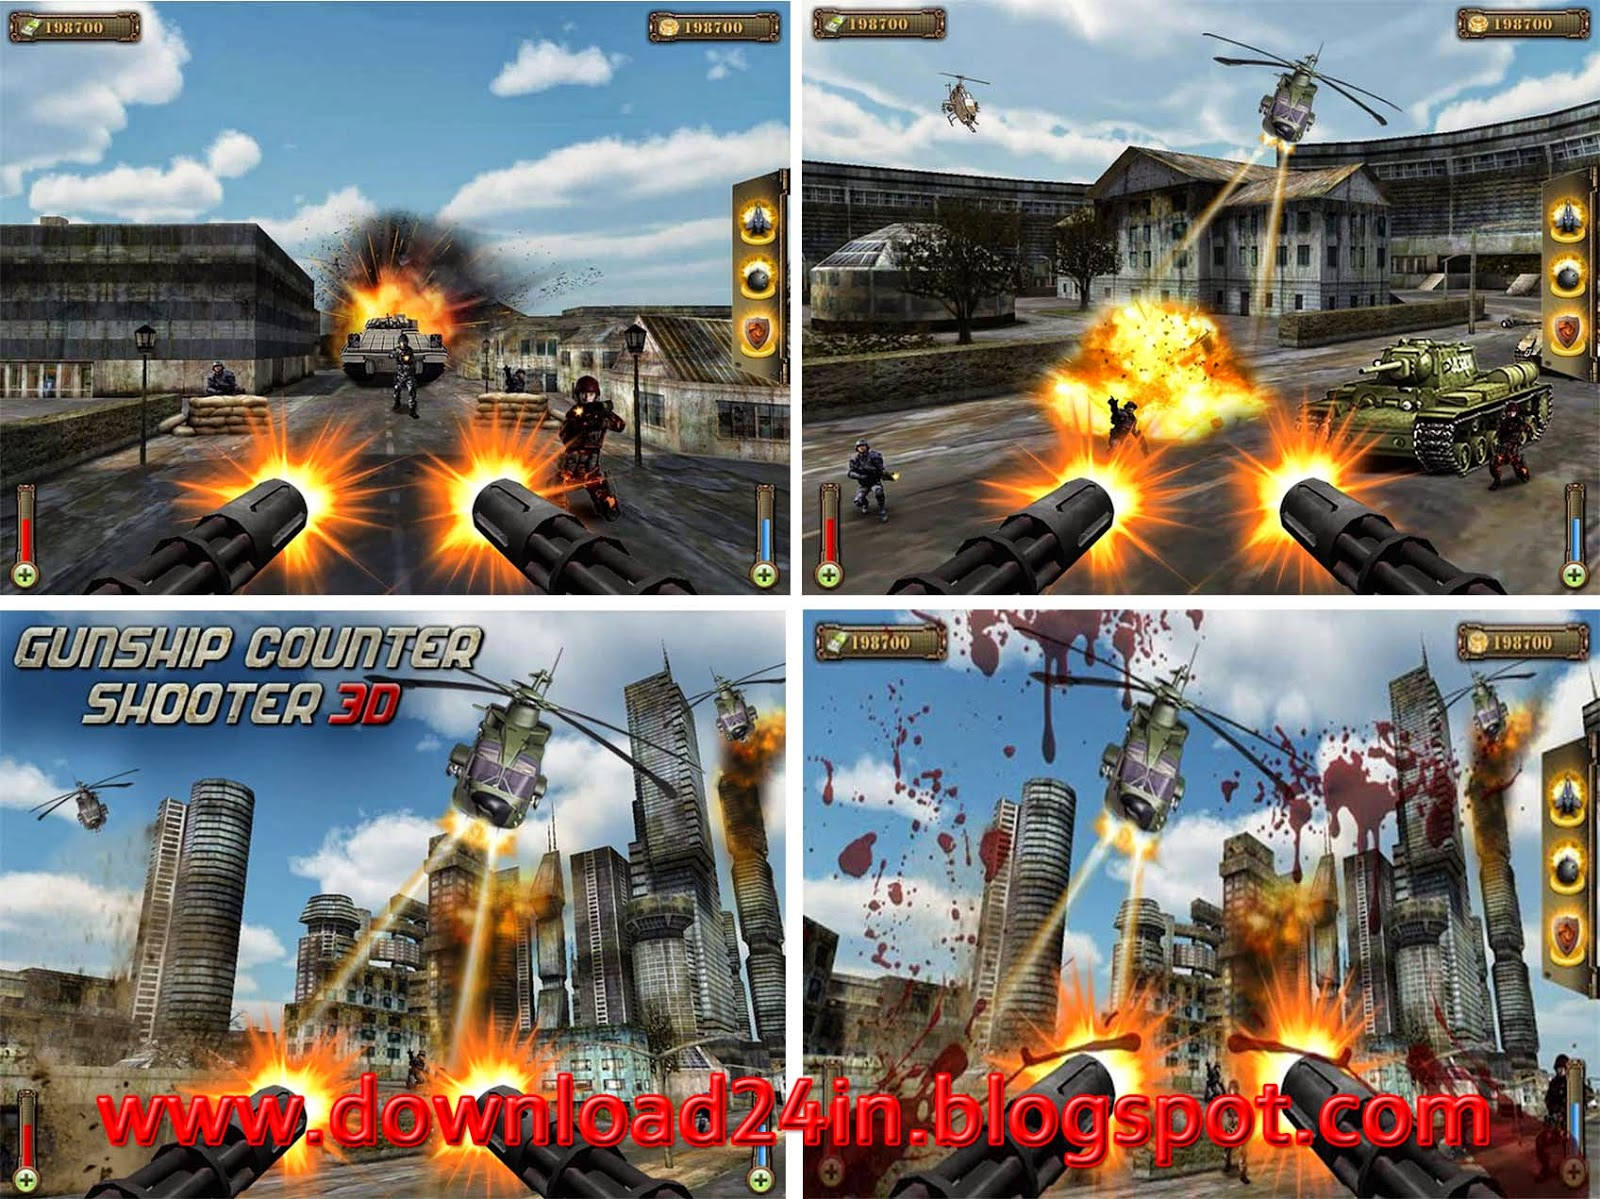 Gunship counter shooter 3d 1 1 3 apk android game free download